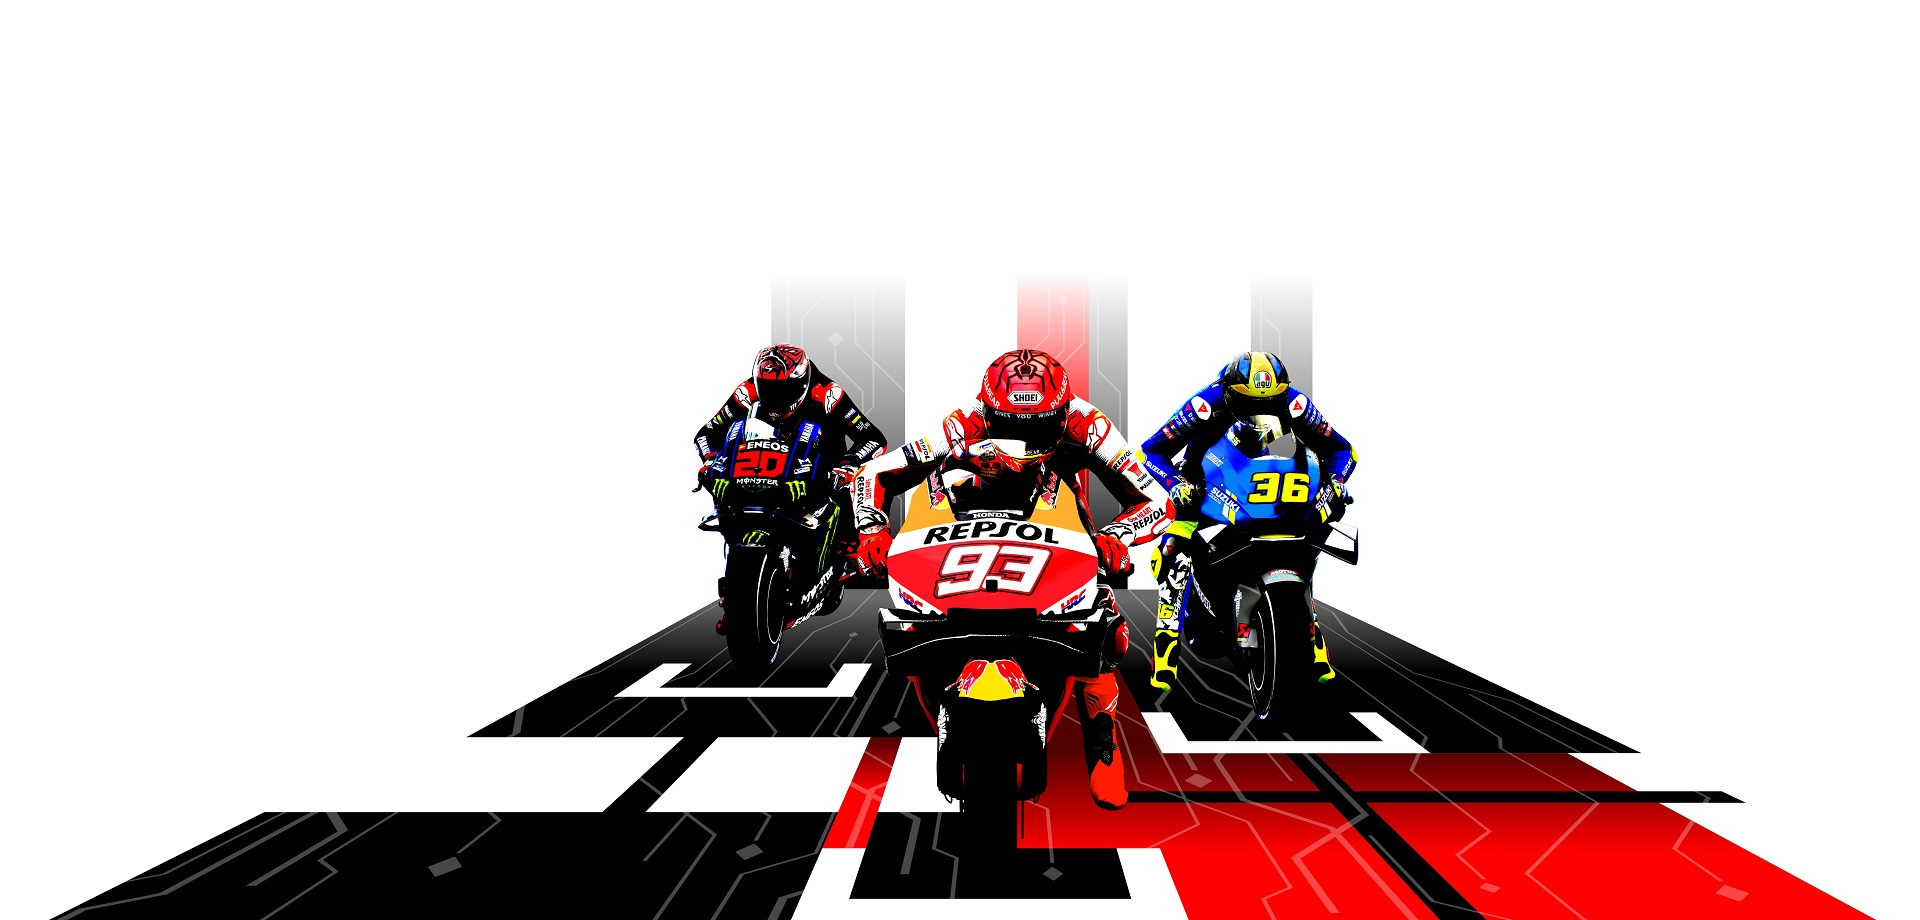 MotoGP 21 Key Art